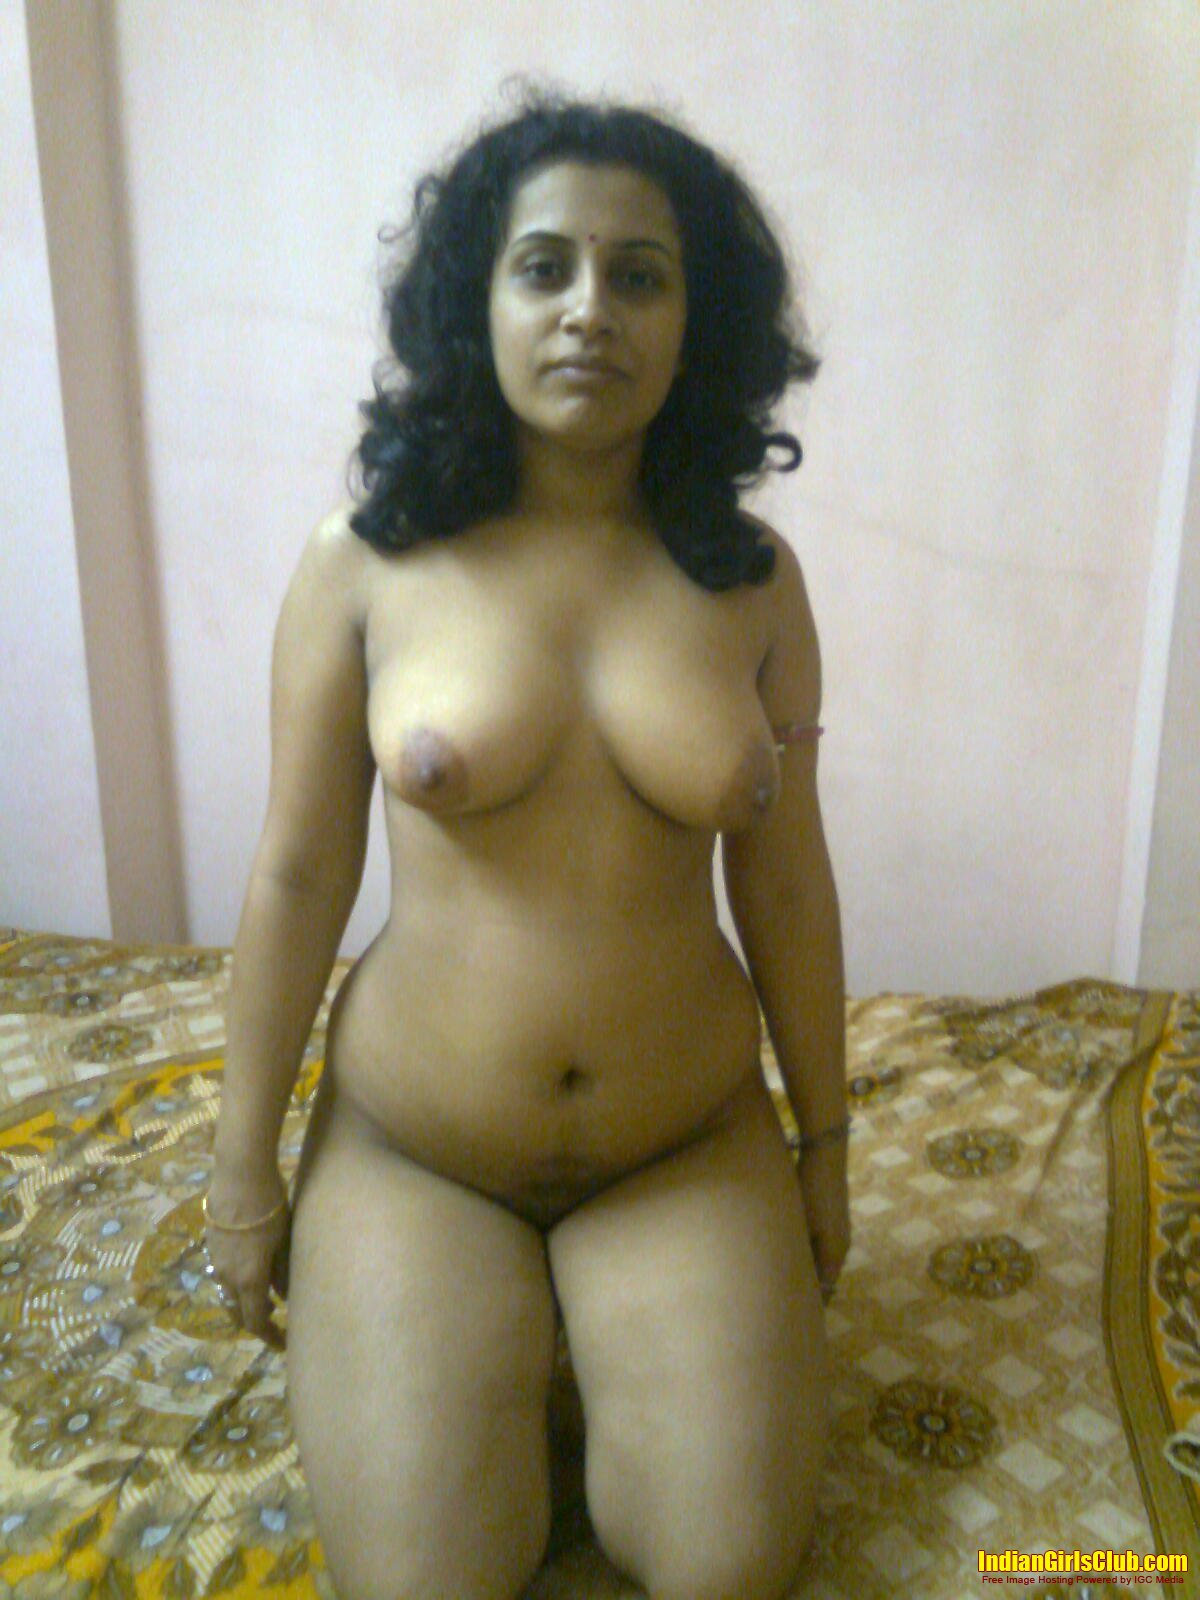 And have Pics of malayali girls going nude excellent